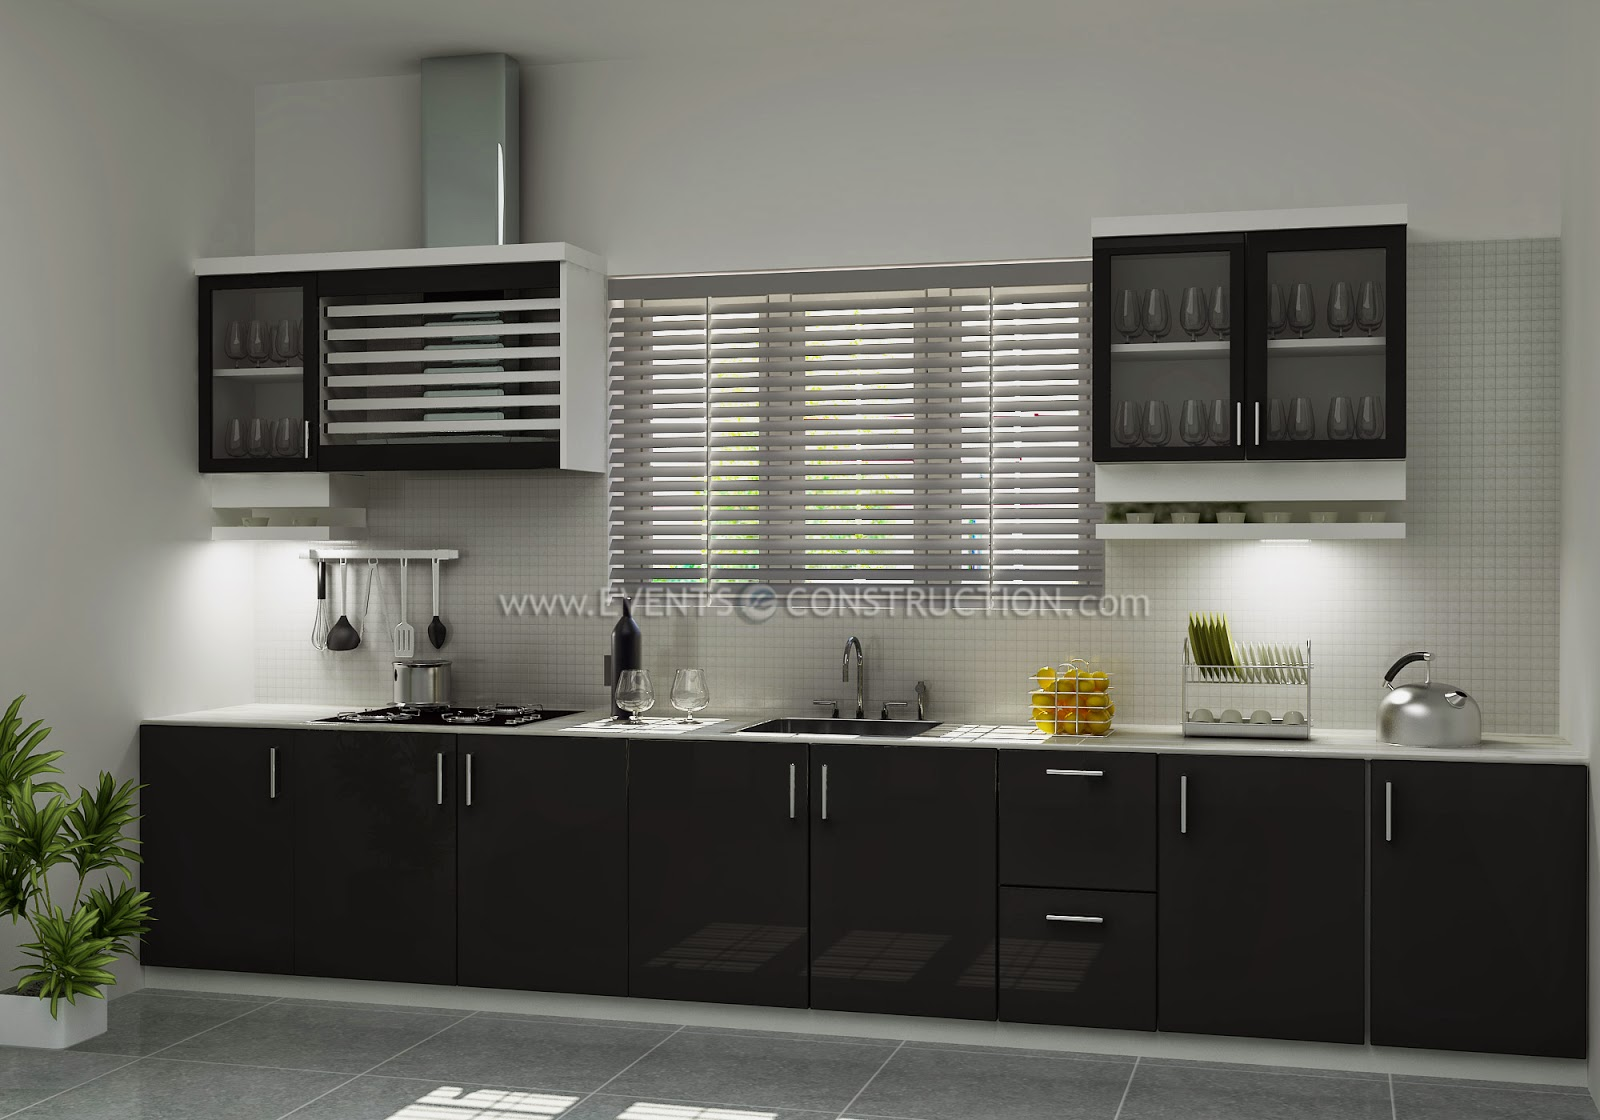 Evens Construction Pvt Ltd Simple And Small Kerala Kitchen Interior Design